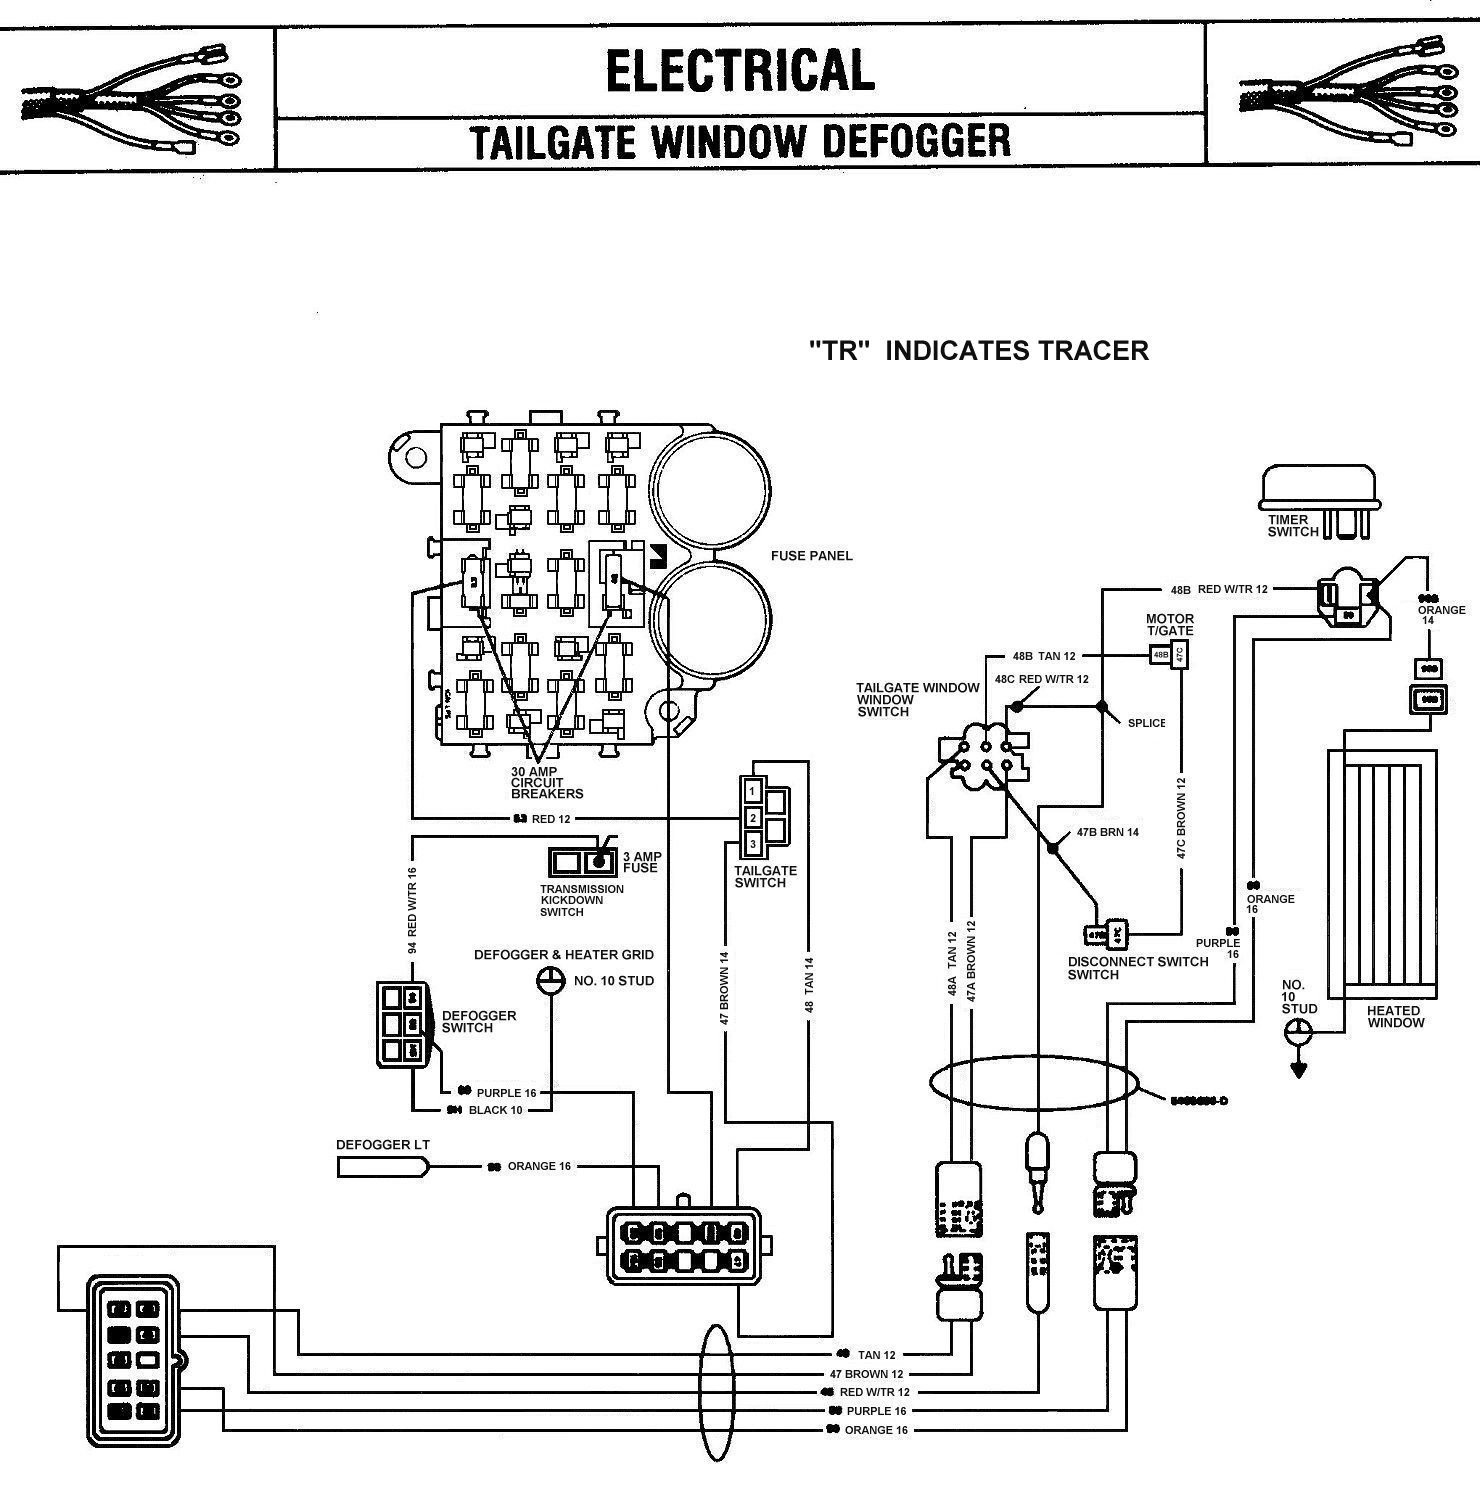 Tom 'oljeep' Collins Fsj Wiring Page 1987 Jeep Grand Wagoneer Wiring Diagram  1987 Jeep Grand Wagoneer Wiring Diagram